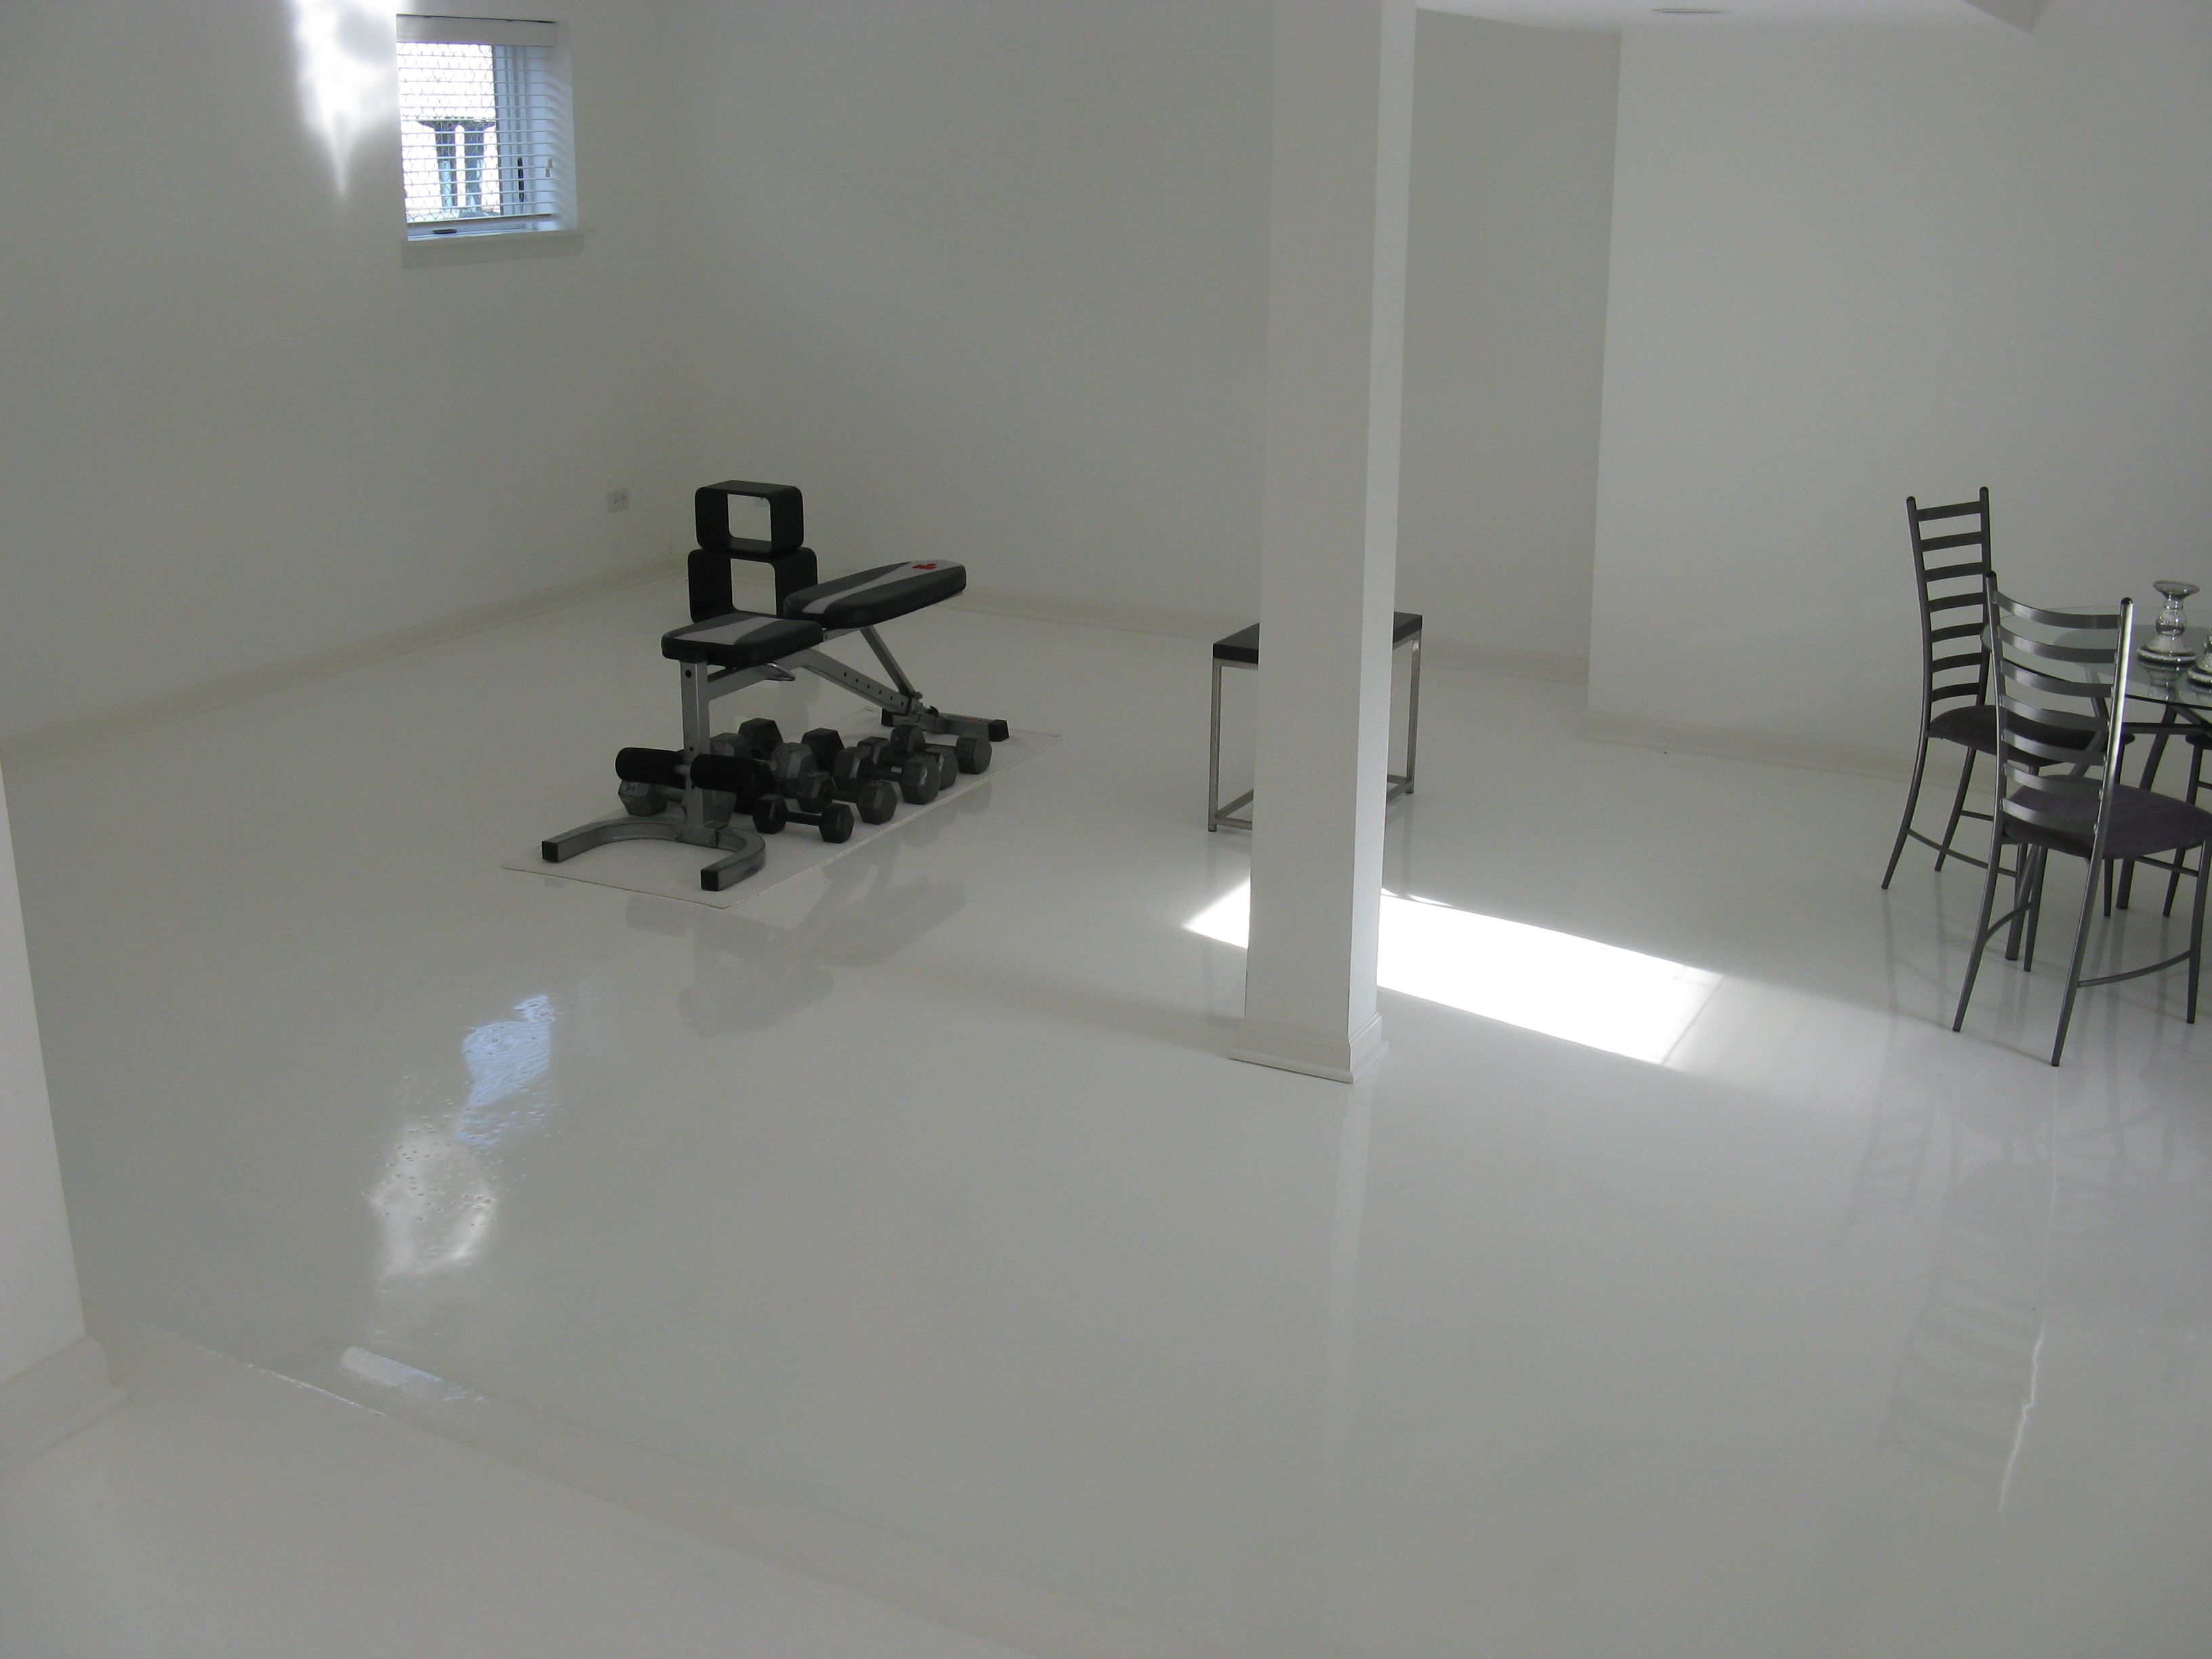 epoxy flooring basement. For More Epoxy Flooring Inspiration Visit Www.broadleafinc.com. Basement N